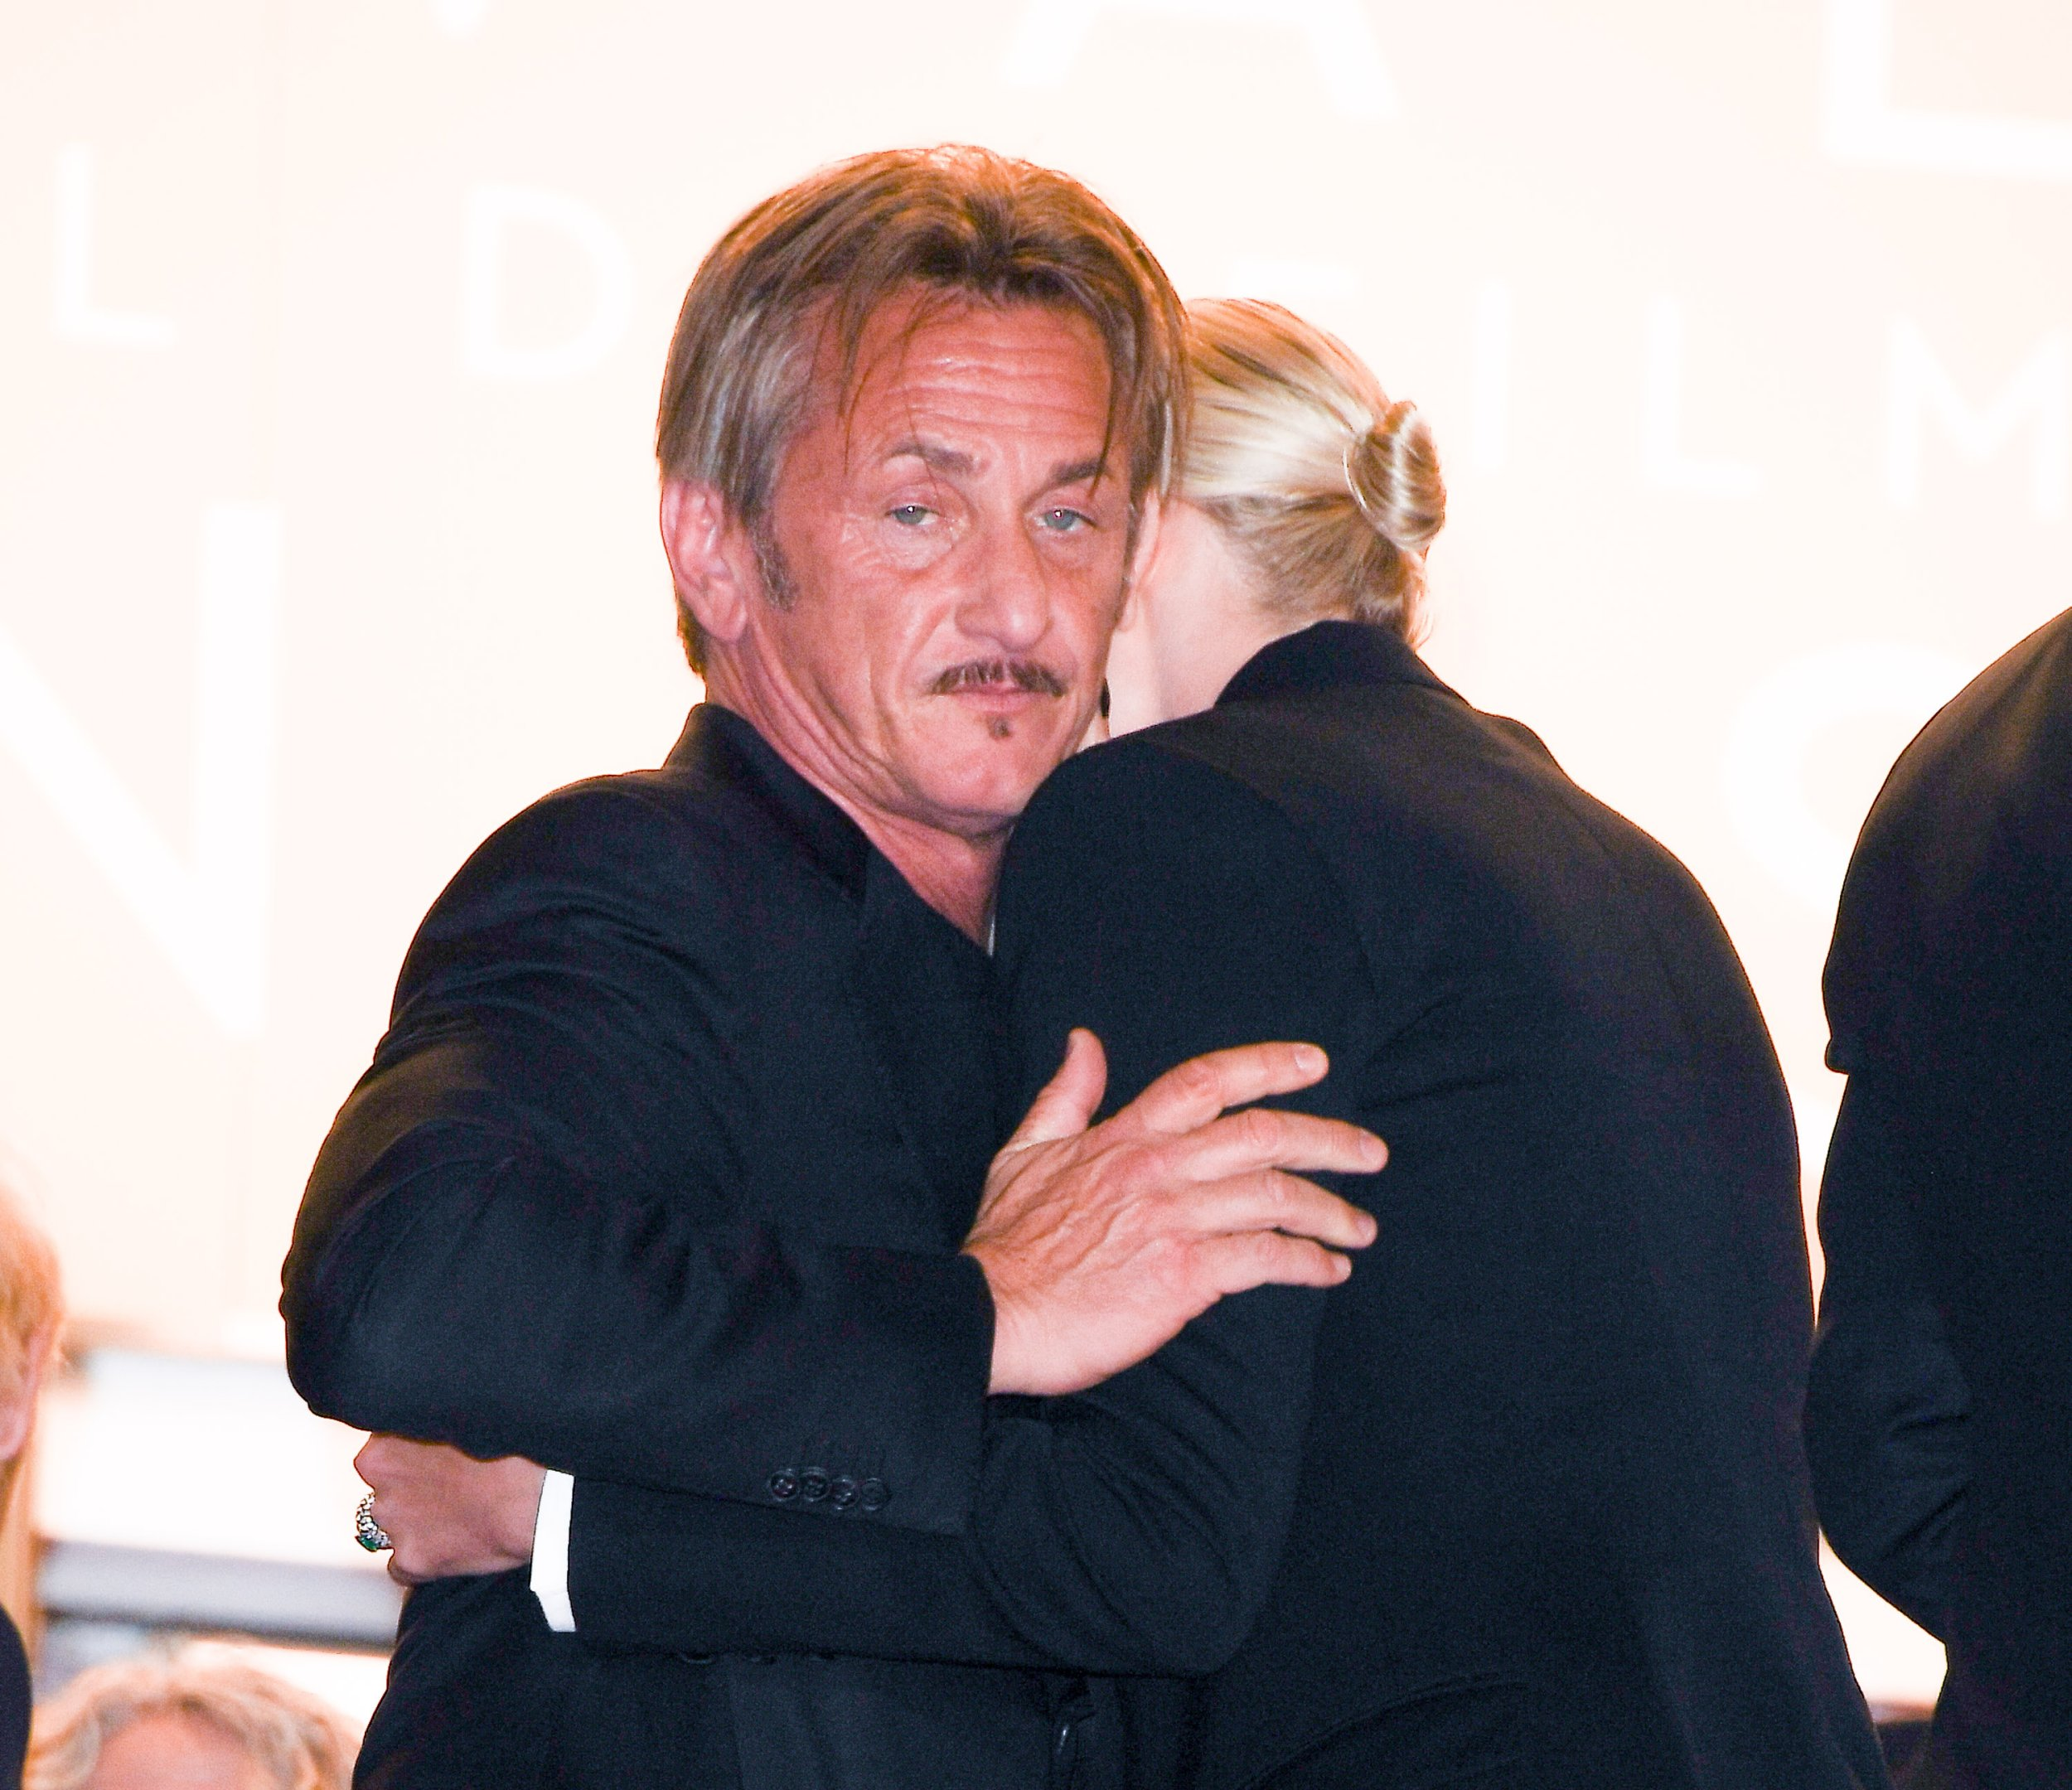 CANNES, FRANCE - MAY 20: Sean Penn embraces Charlize Theron as they attend the screening of 'The Last Face' at the annual 69th Cannes Film Festival at Palais des Festivals on May 20, 2016 in Cannes, France. (Photo by George Pimentel/WireImage)